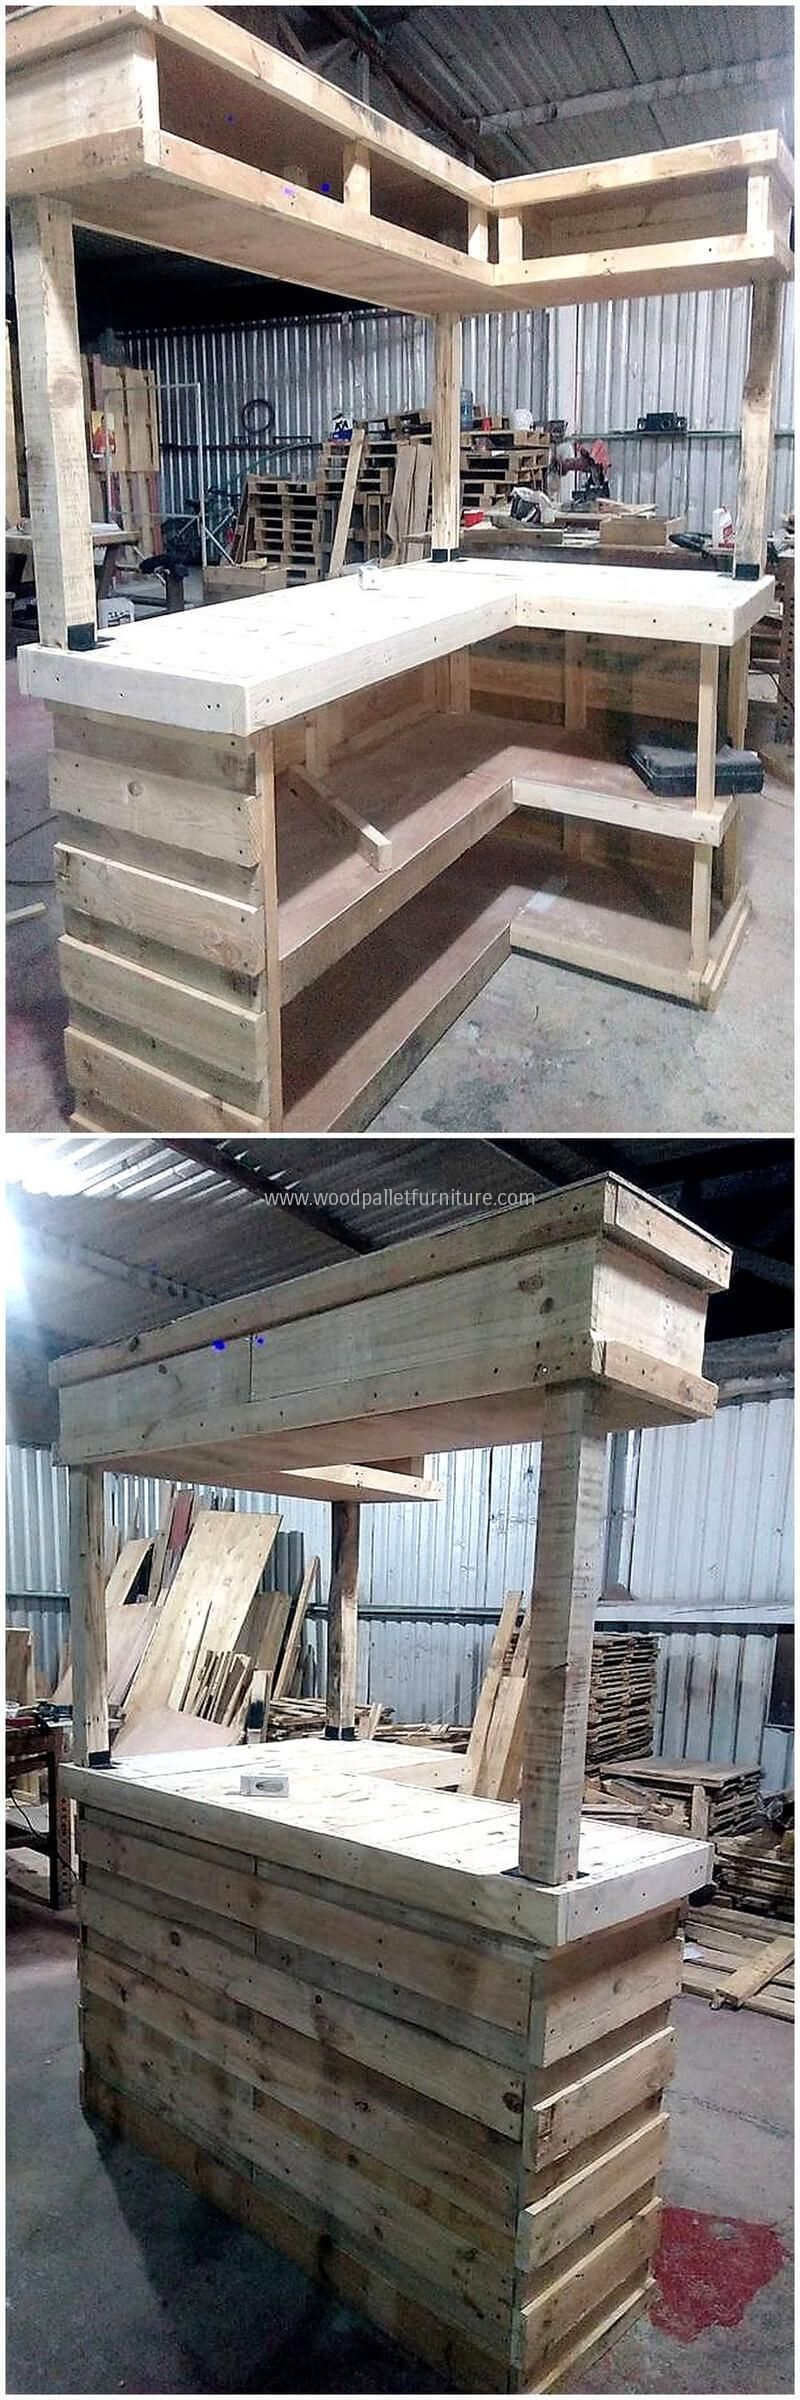 #repurposing #something #reclaimed #projects #business #pallets #purpose #perfect #bottles #pallet #wooden #copied #guests #enough #personRepurposing Projects with Reclaimed Wooden Pallets Now here is an idea for a huge wood pallet bar, it can be copied for the business purpose like if any person has a bar and he/she wants something to serve the guests. There is enough space to place the wine bottles in a perfect way.Now here is an idea for a huge wood pallet bar, it can be copied for the...